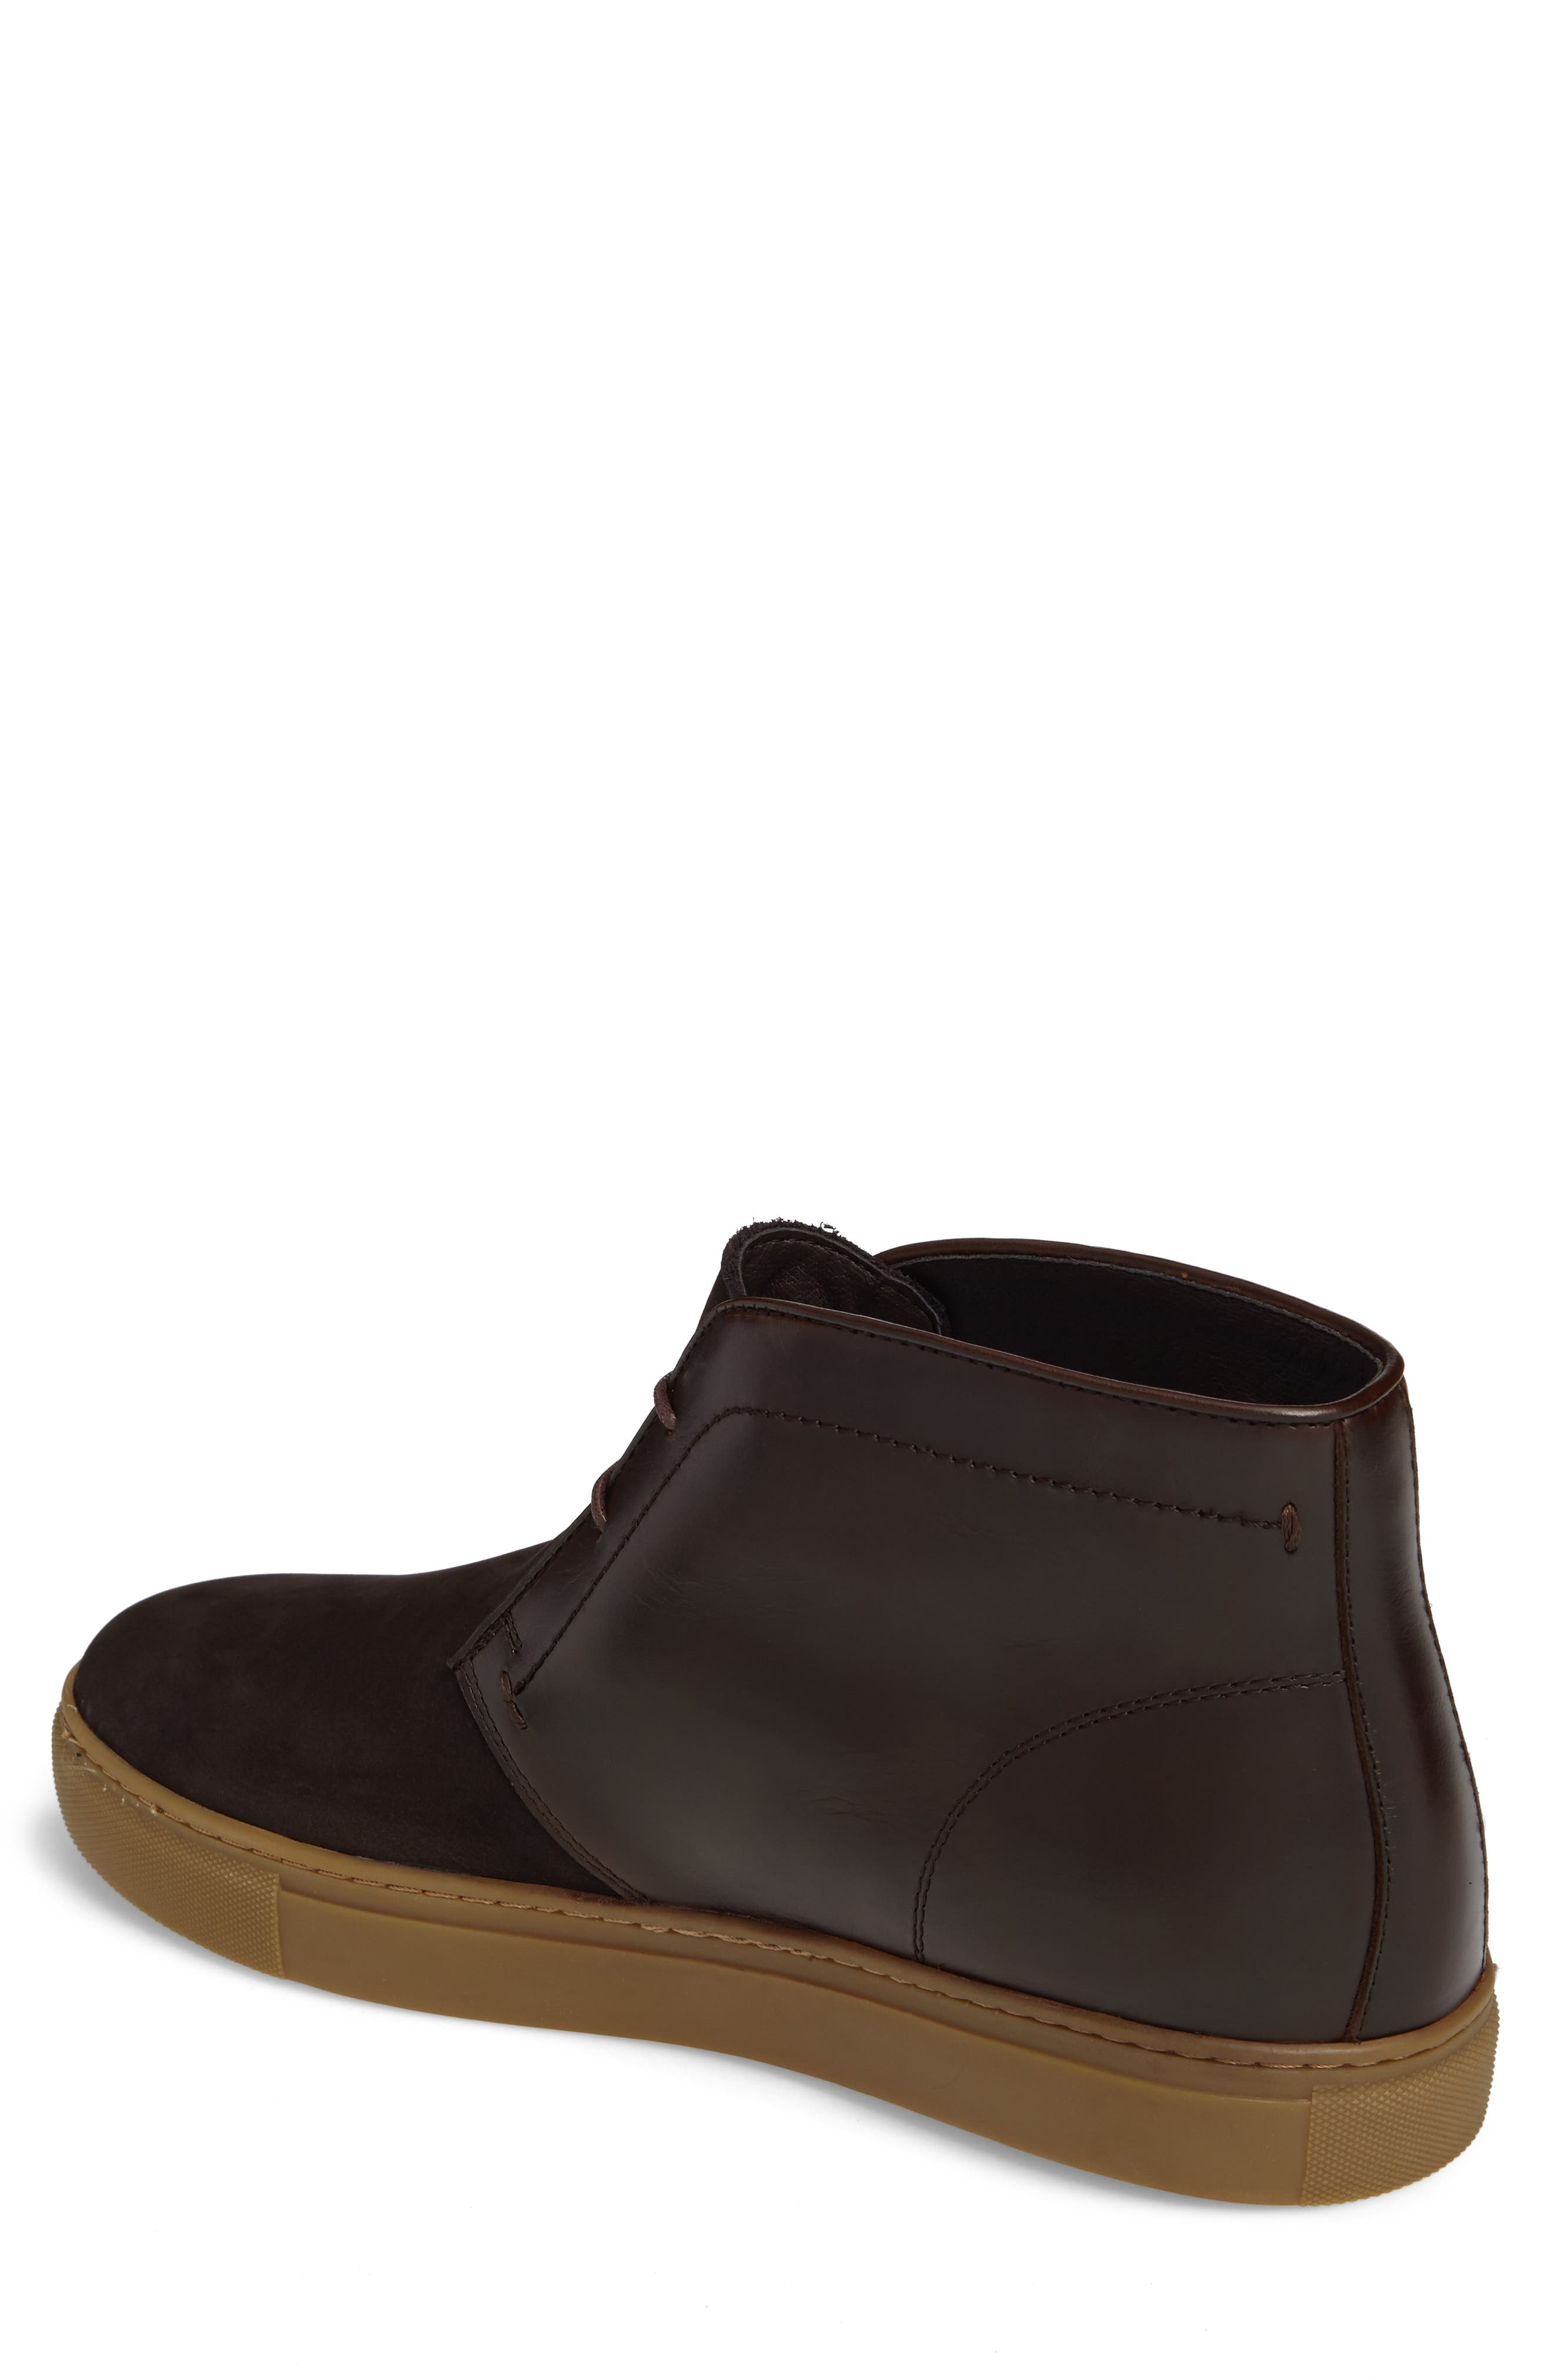 Laxey Mid Sneaker,                             Alternate thumbnail 4, color,